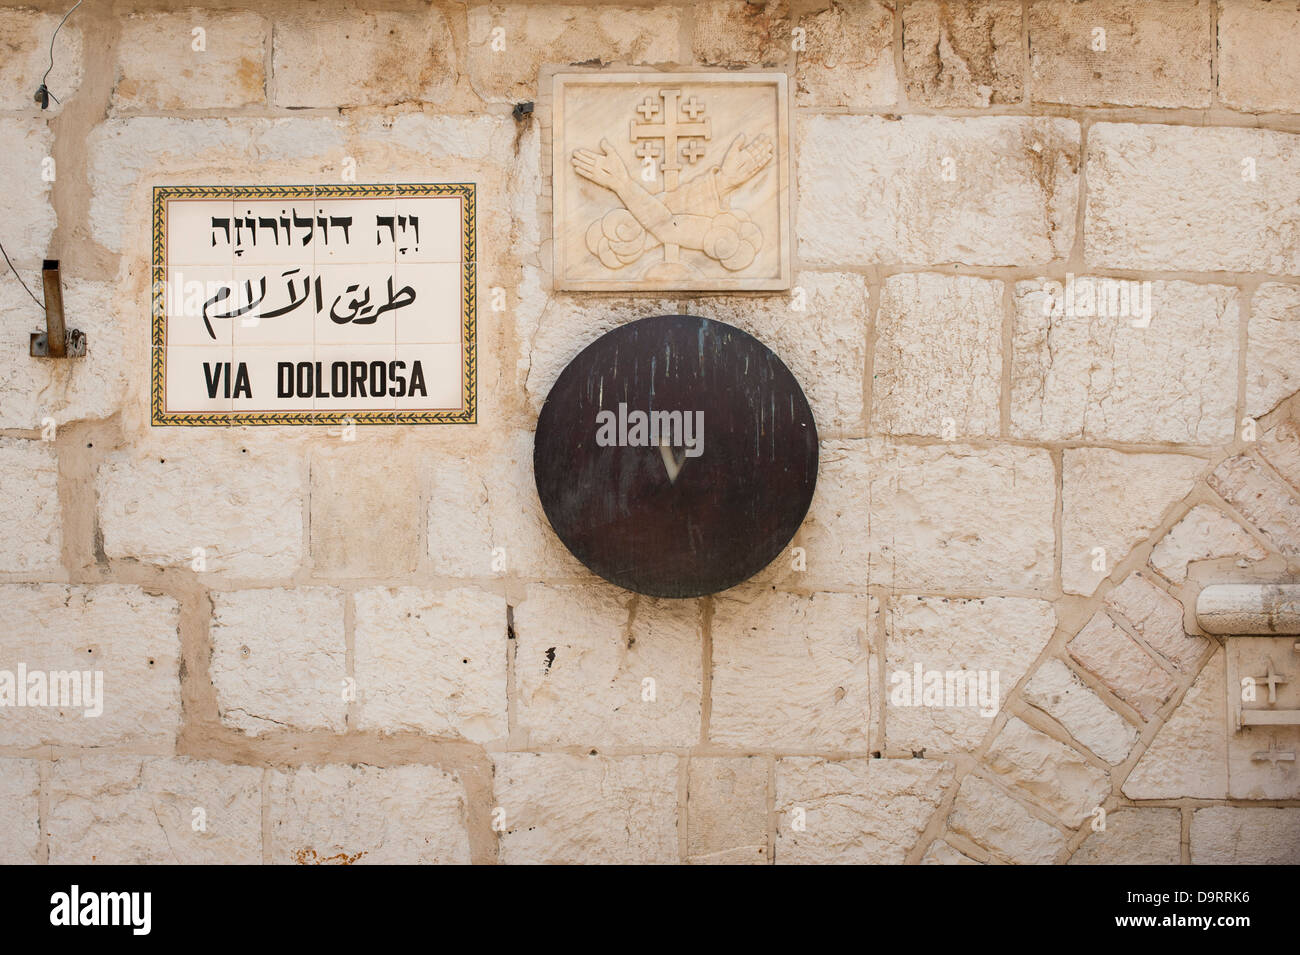 Israel Old City Jerusalem Via Dolorosa Station of the Cross 5 five fifth Simon of Cyrene helps Jesus carry cross - Stock Image